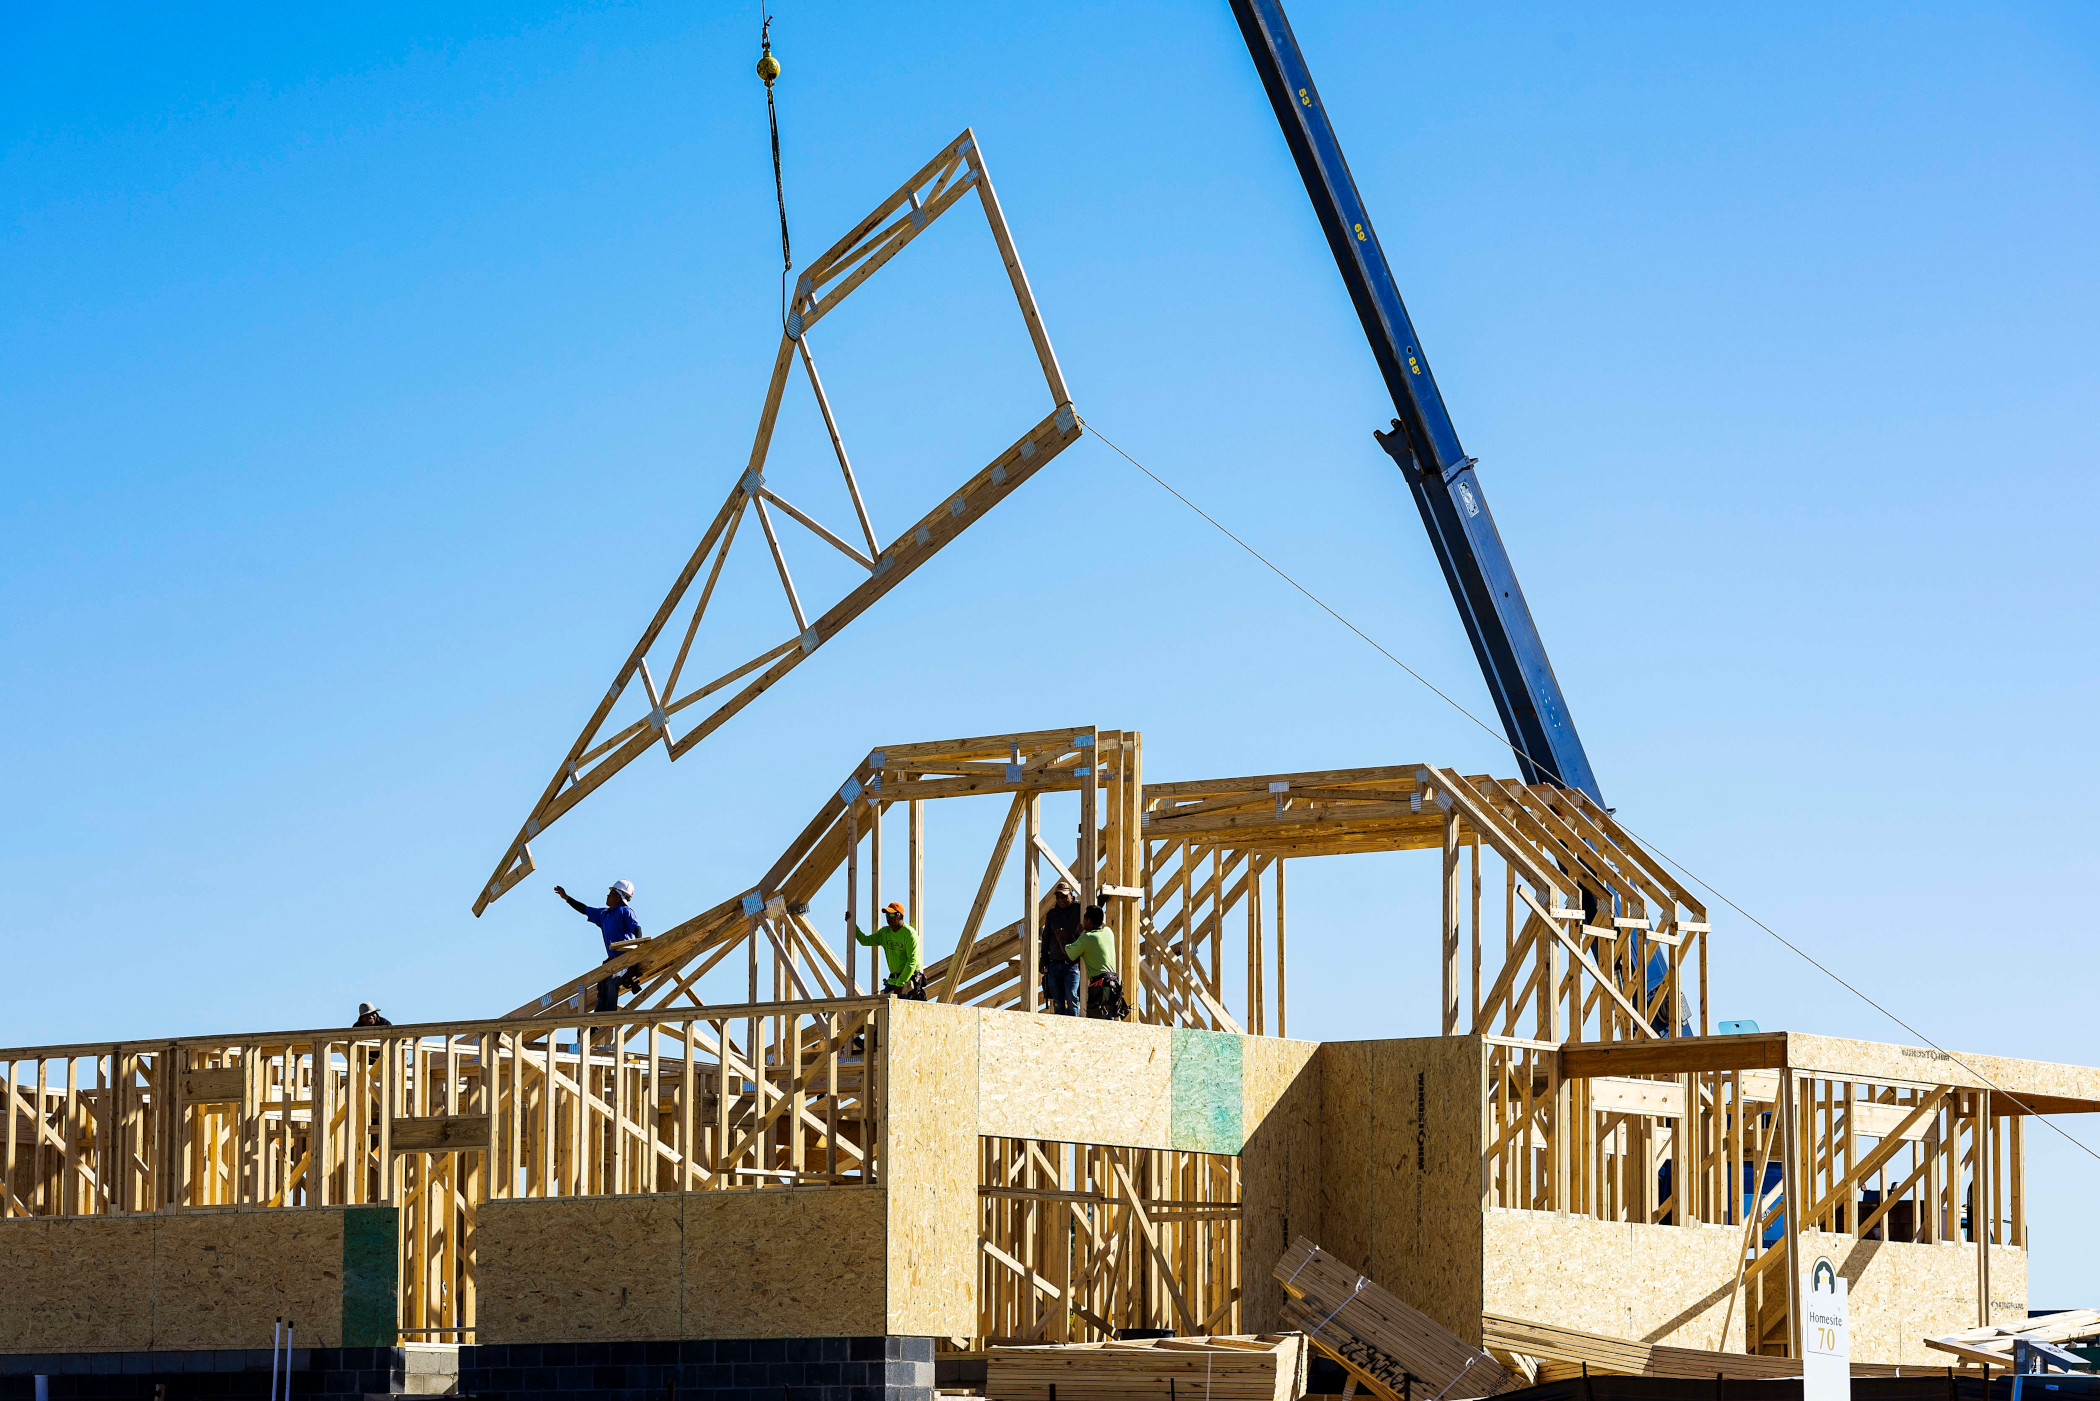 Framing lumber shortages have been a problem for homebuilders but a shortage of appliances is also troublesome. (Getty Images)